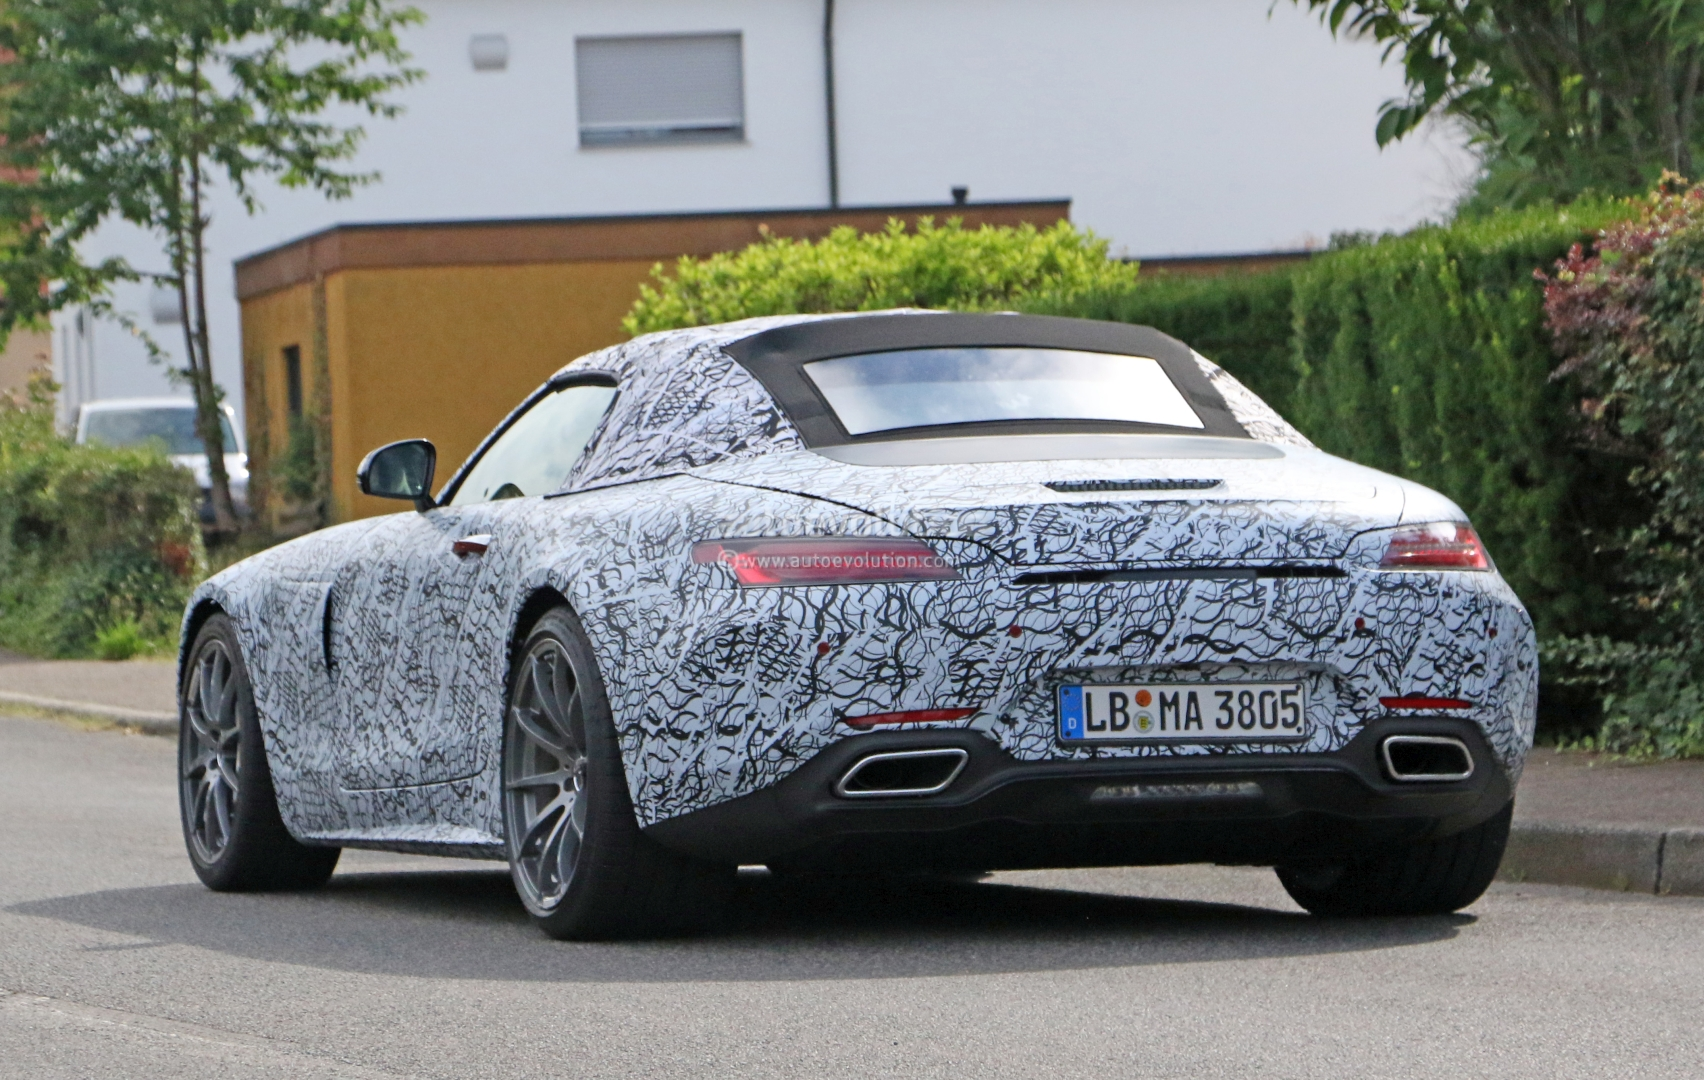 2018 mercedes amg gt c roadster shows its soft top in new spyshots autoevolution. Black Bedroom Furniture Sets. Home Design Ideas